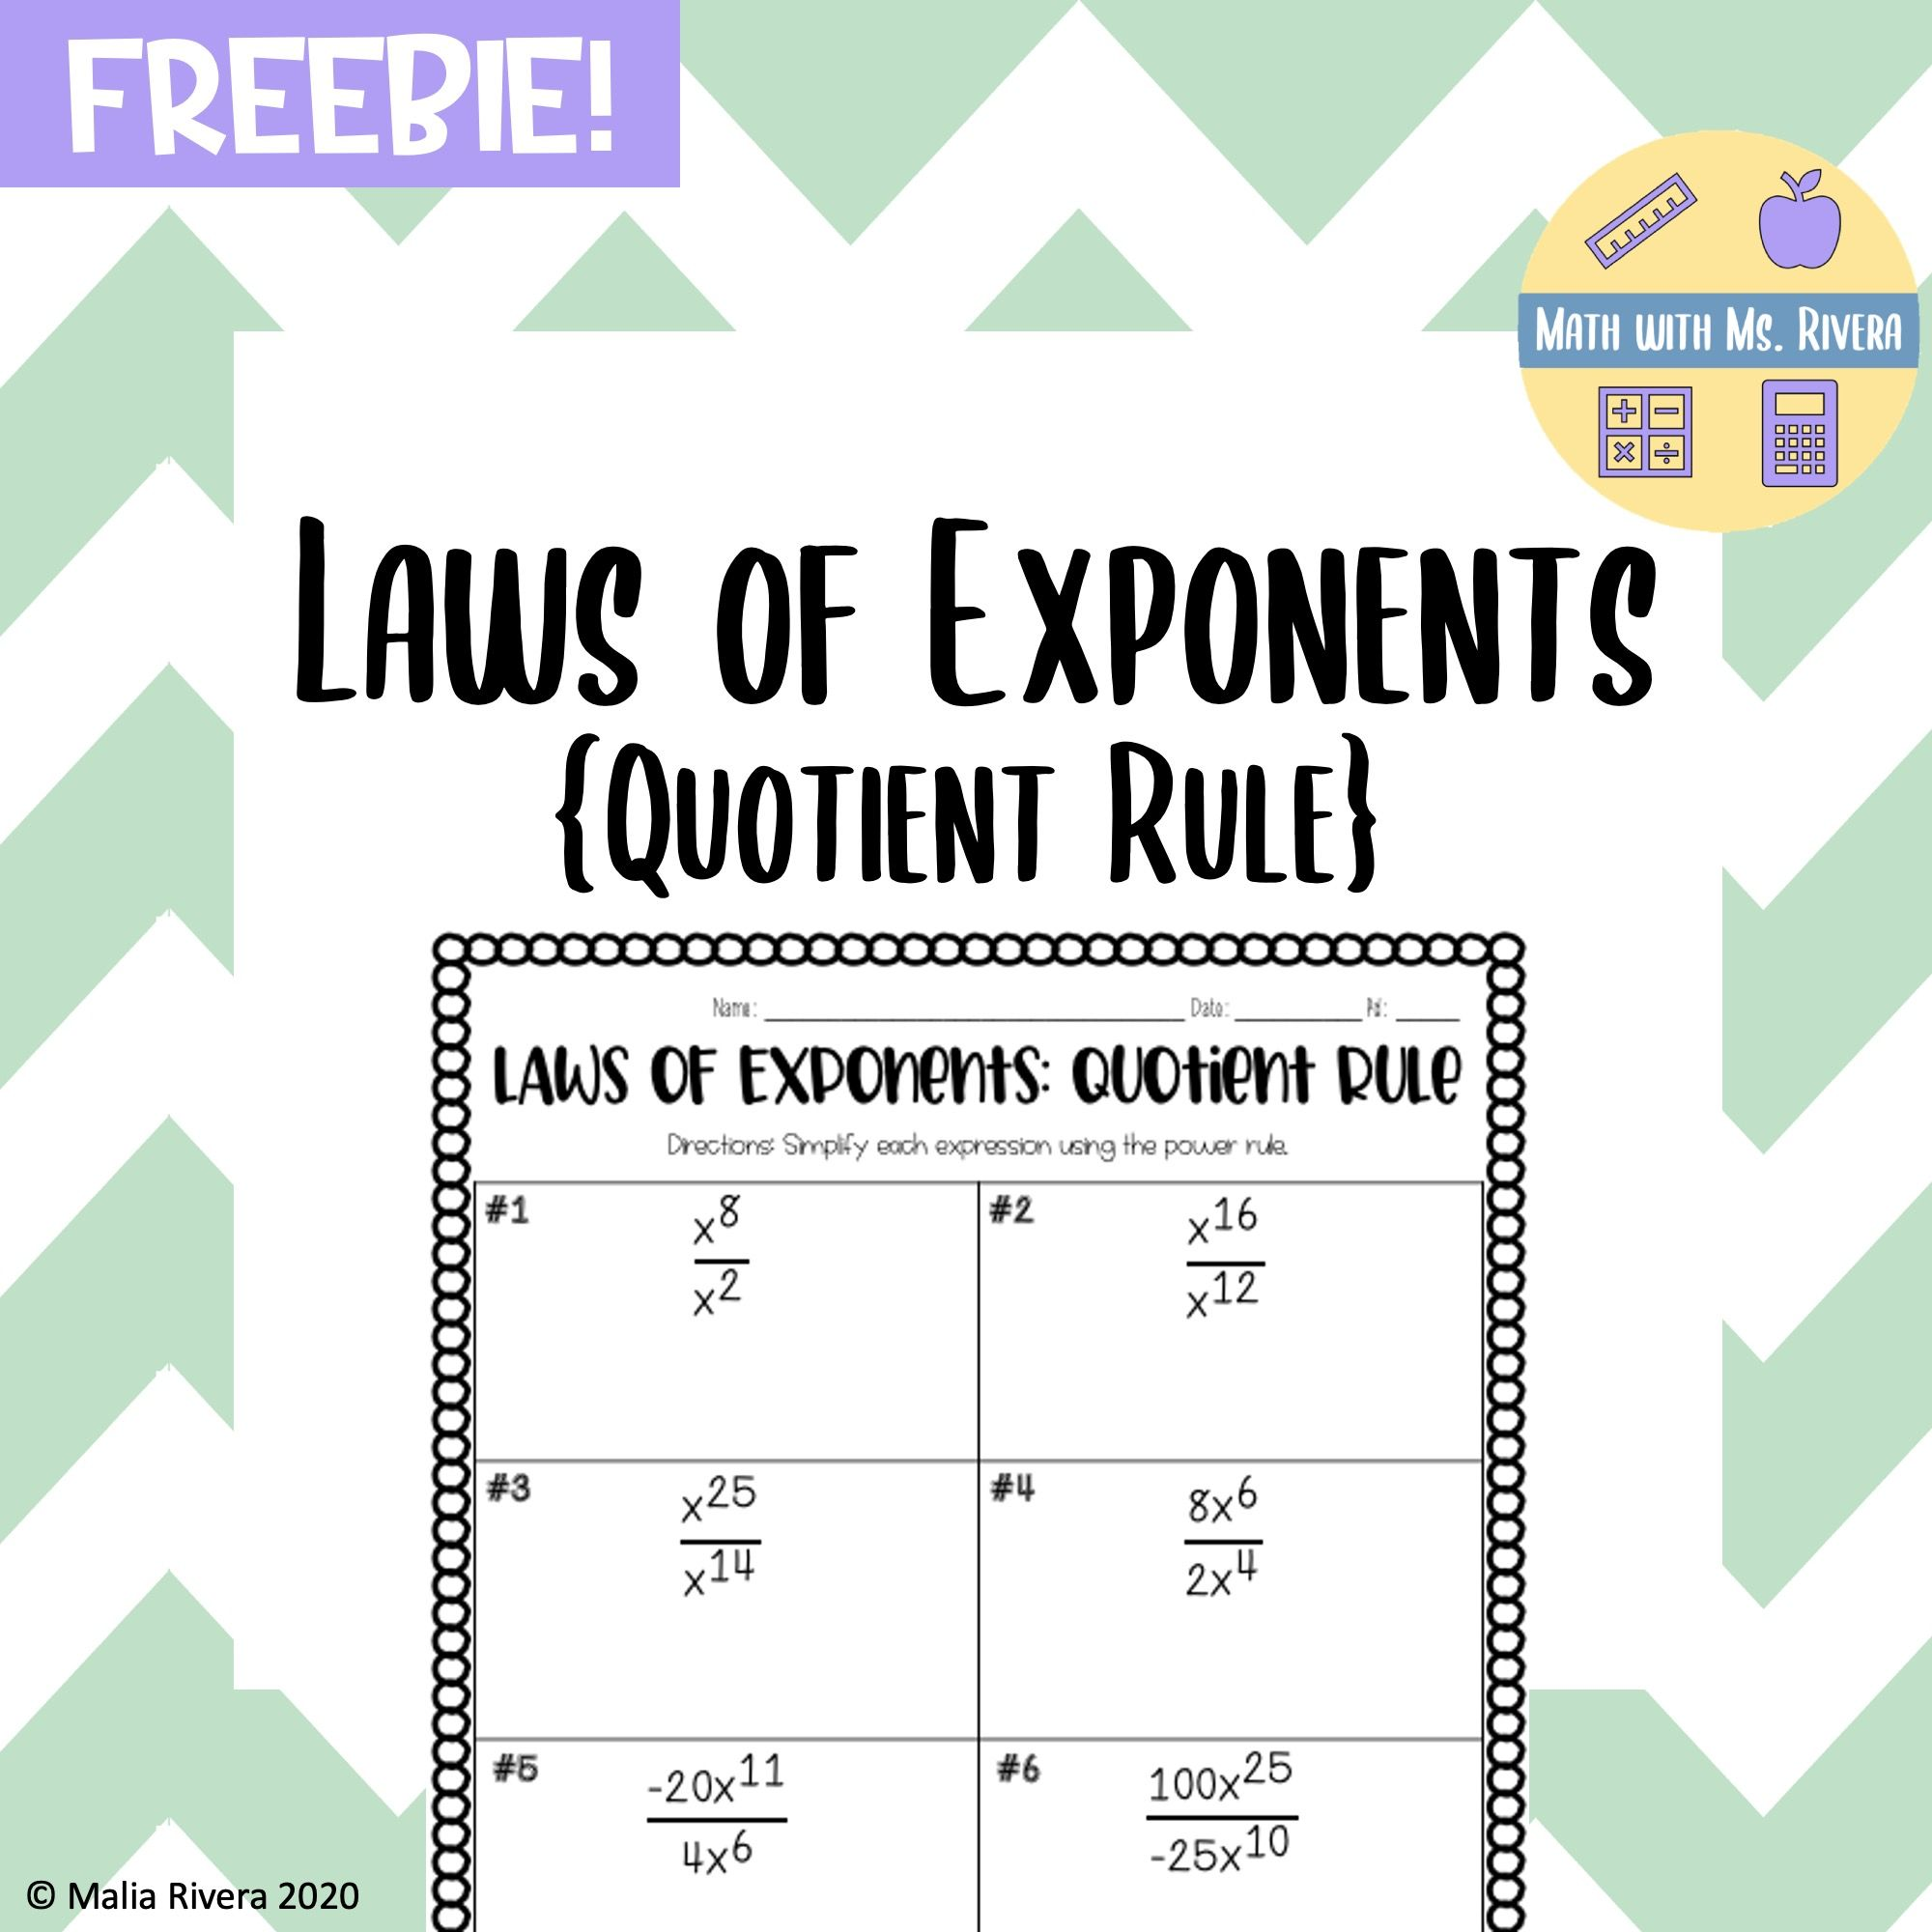 Laws Of Exponents Quotient Rule Worksheet Freebie In 2020 Quotient Rule Power Rule Negative Exponents